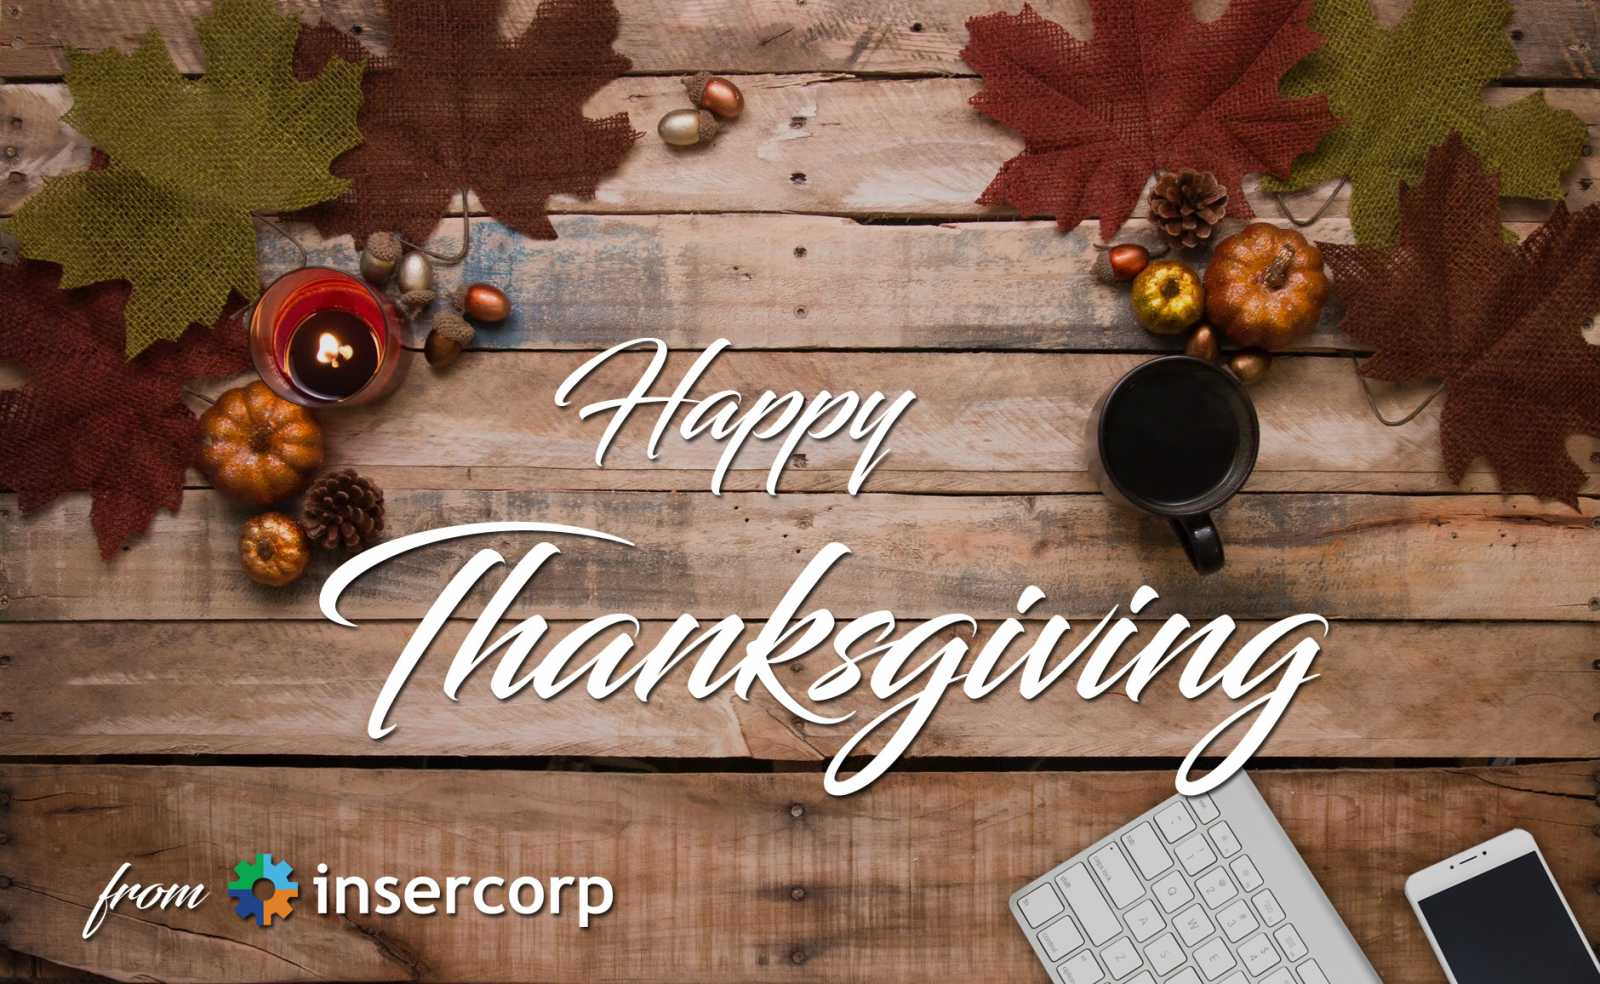 Happy Thanksgiving from Insercorp!